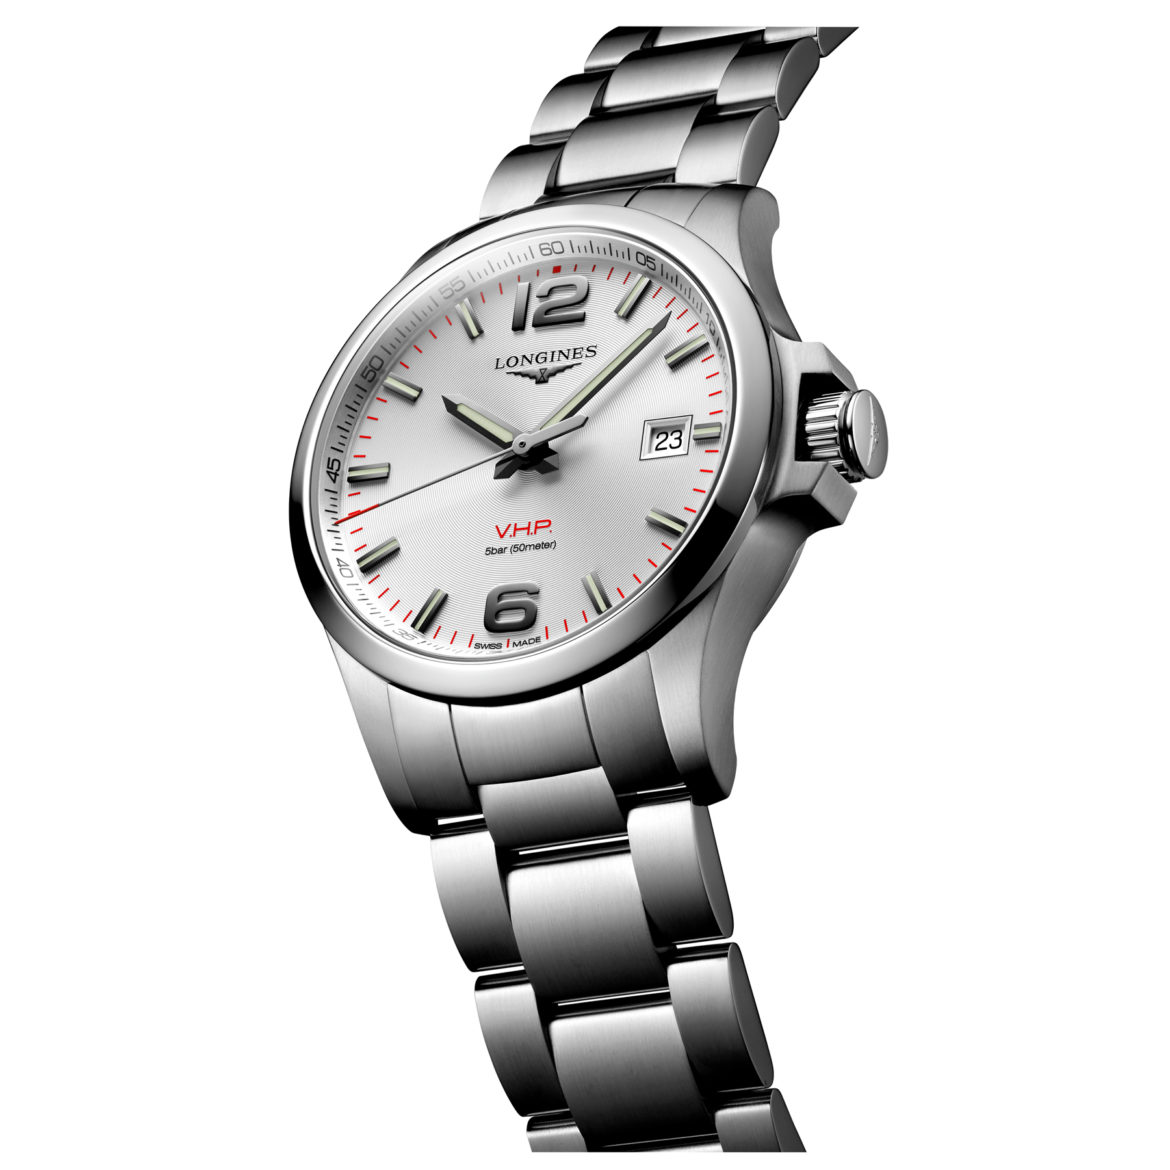 LONGINES</br/>Conquest VHP</br/>L37264766